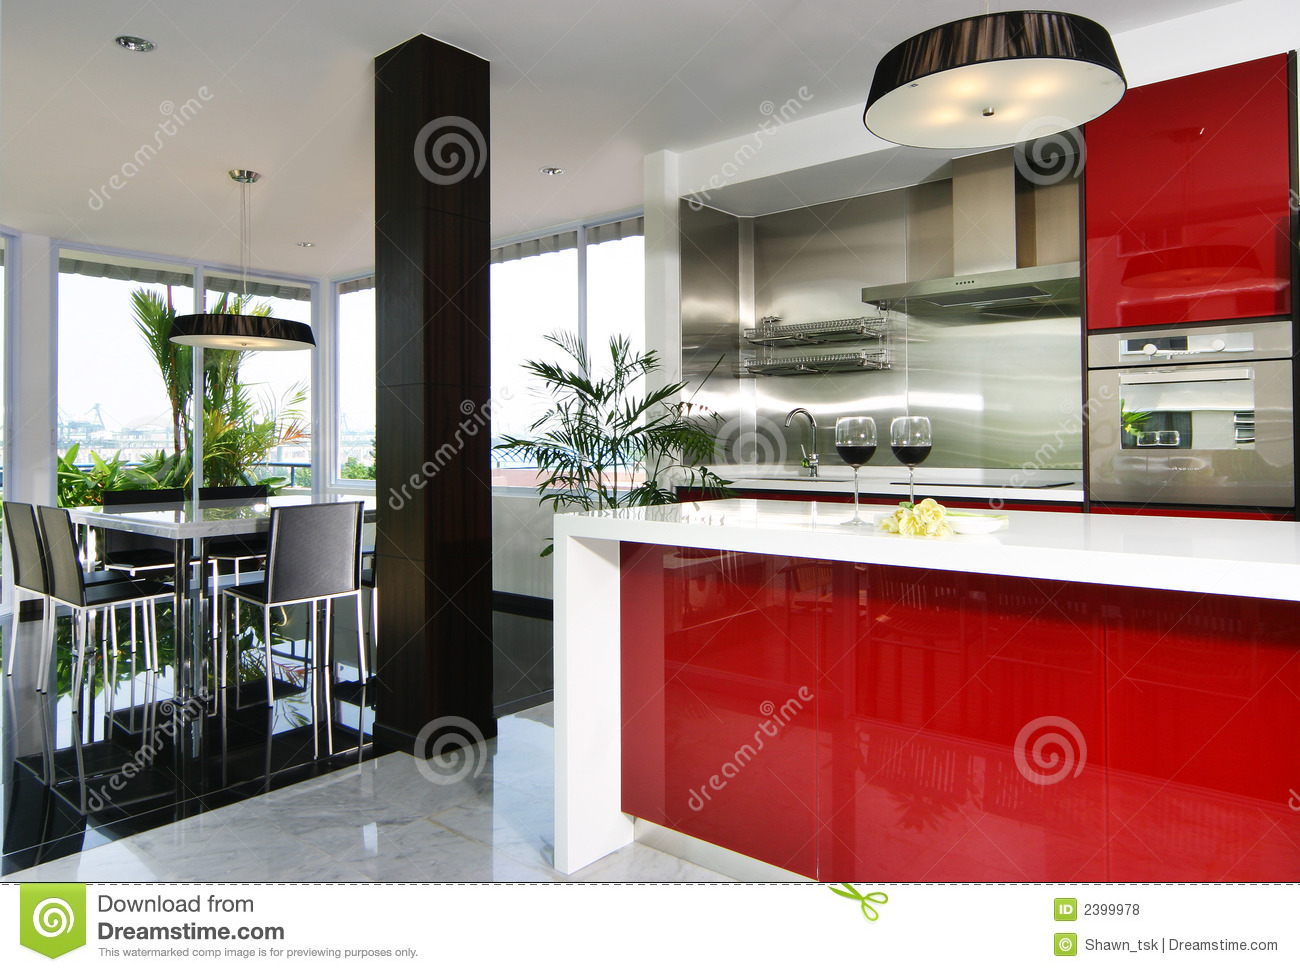 Interior Design Kitchen Royalty Free Stock Photos Image 2399978